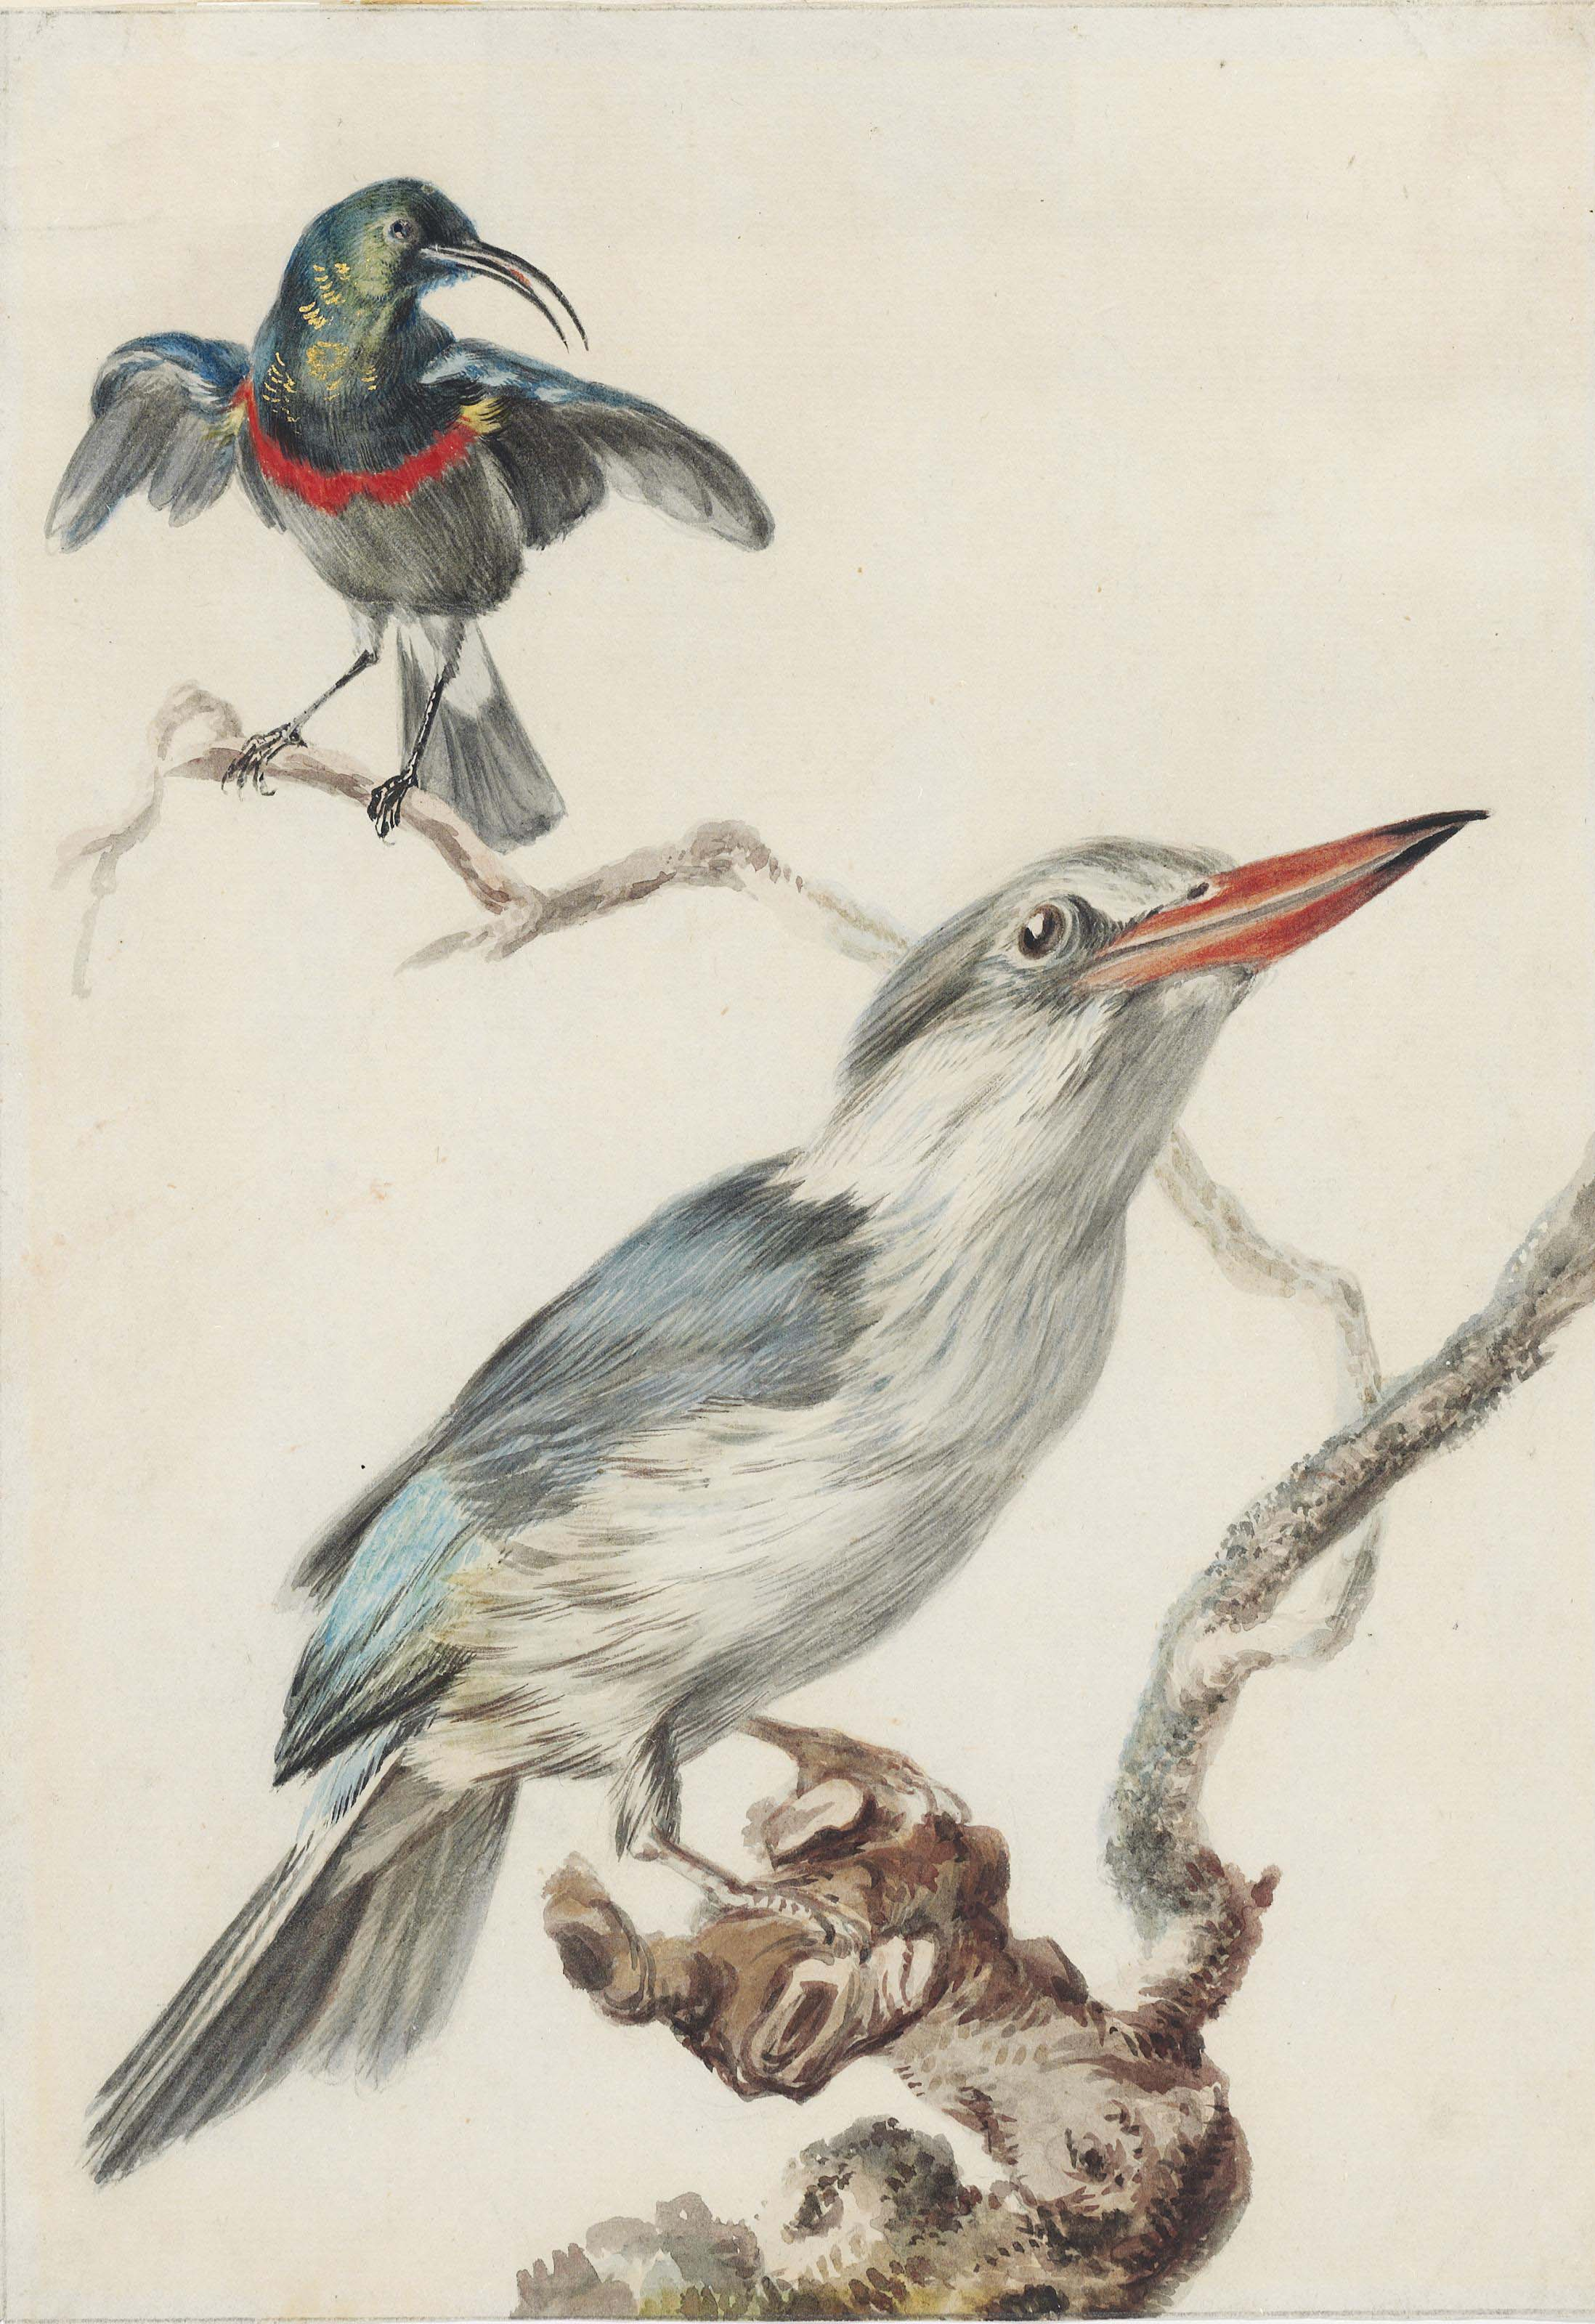 A kingfisher and a sunbird